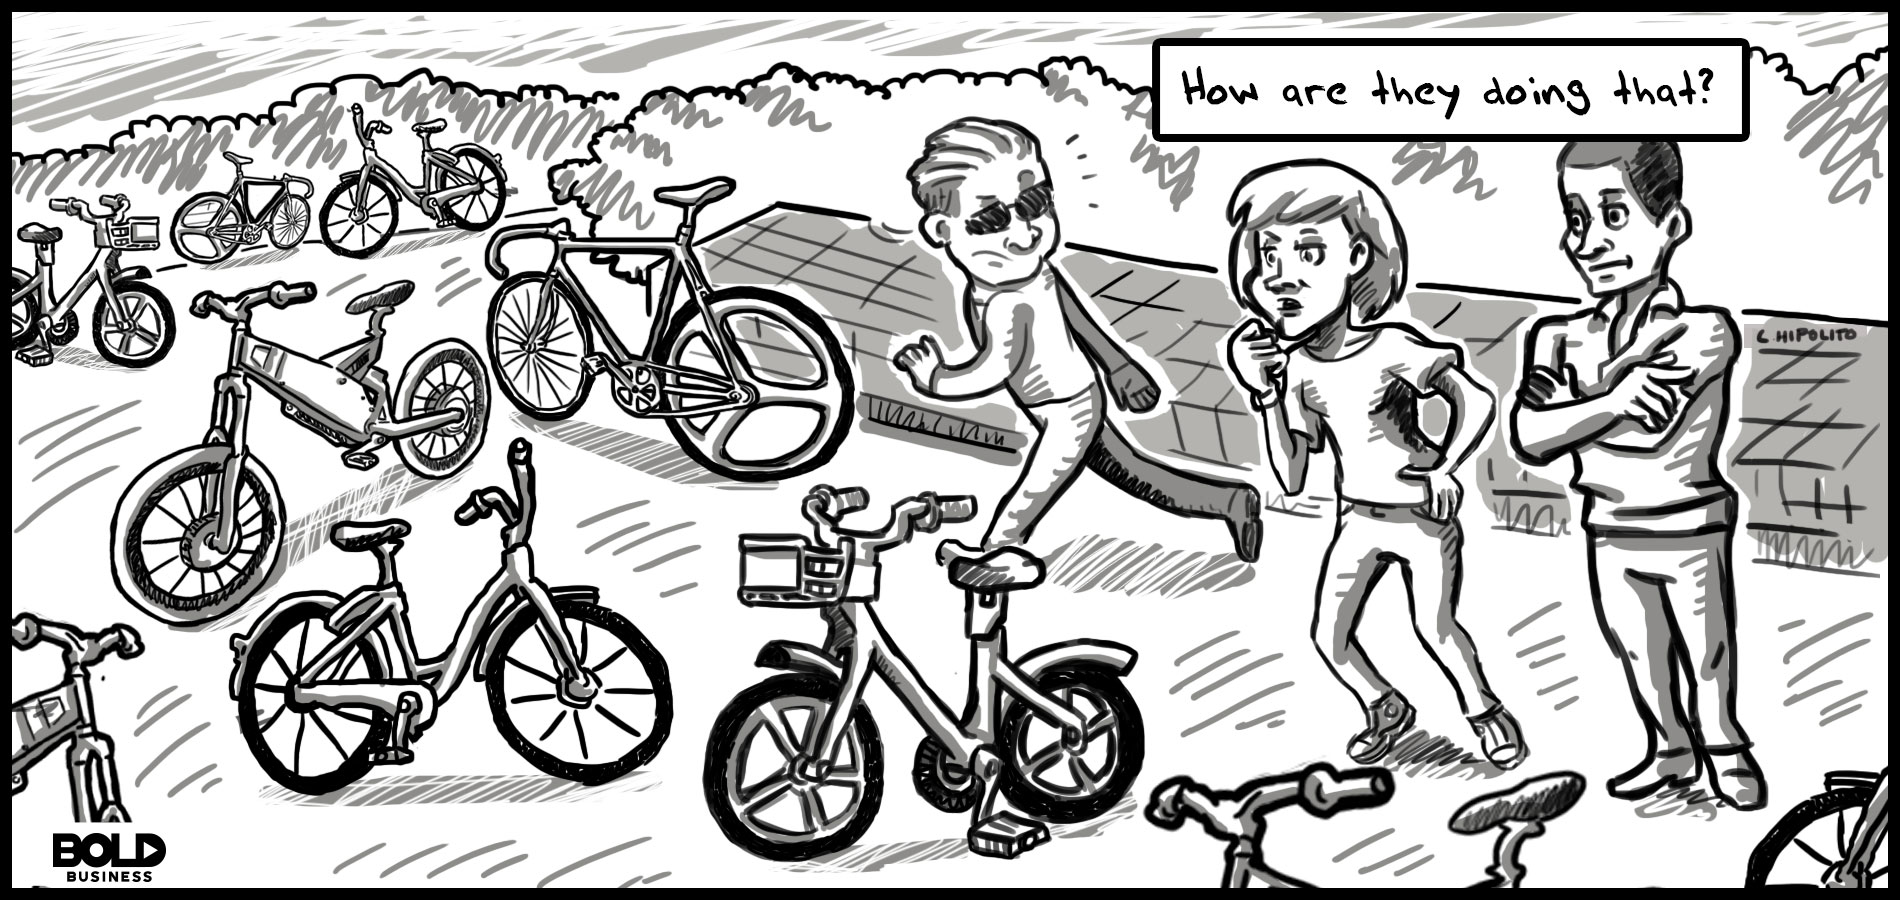 a monochromatic cartoon of three people surrounded by dockless bikes in New York City